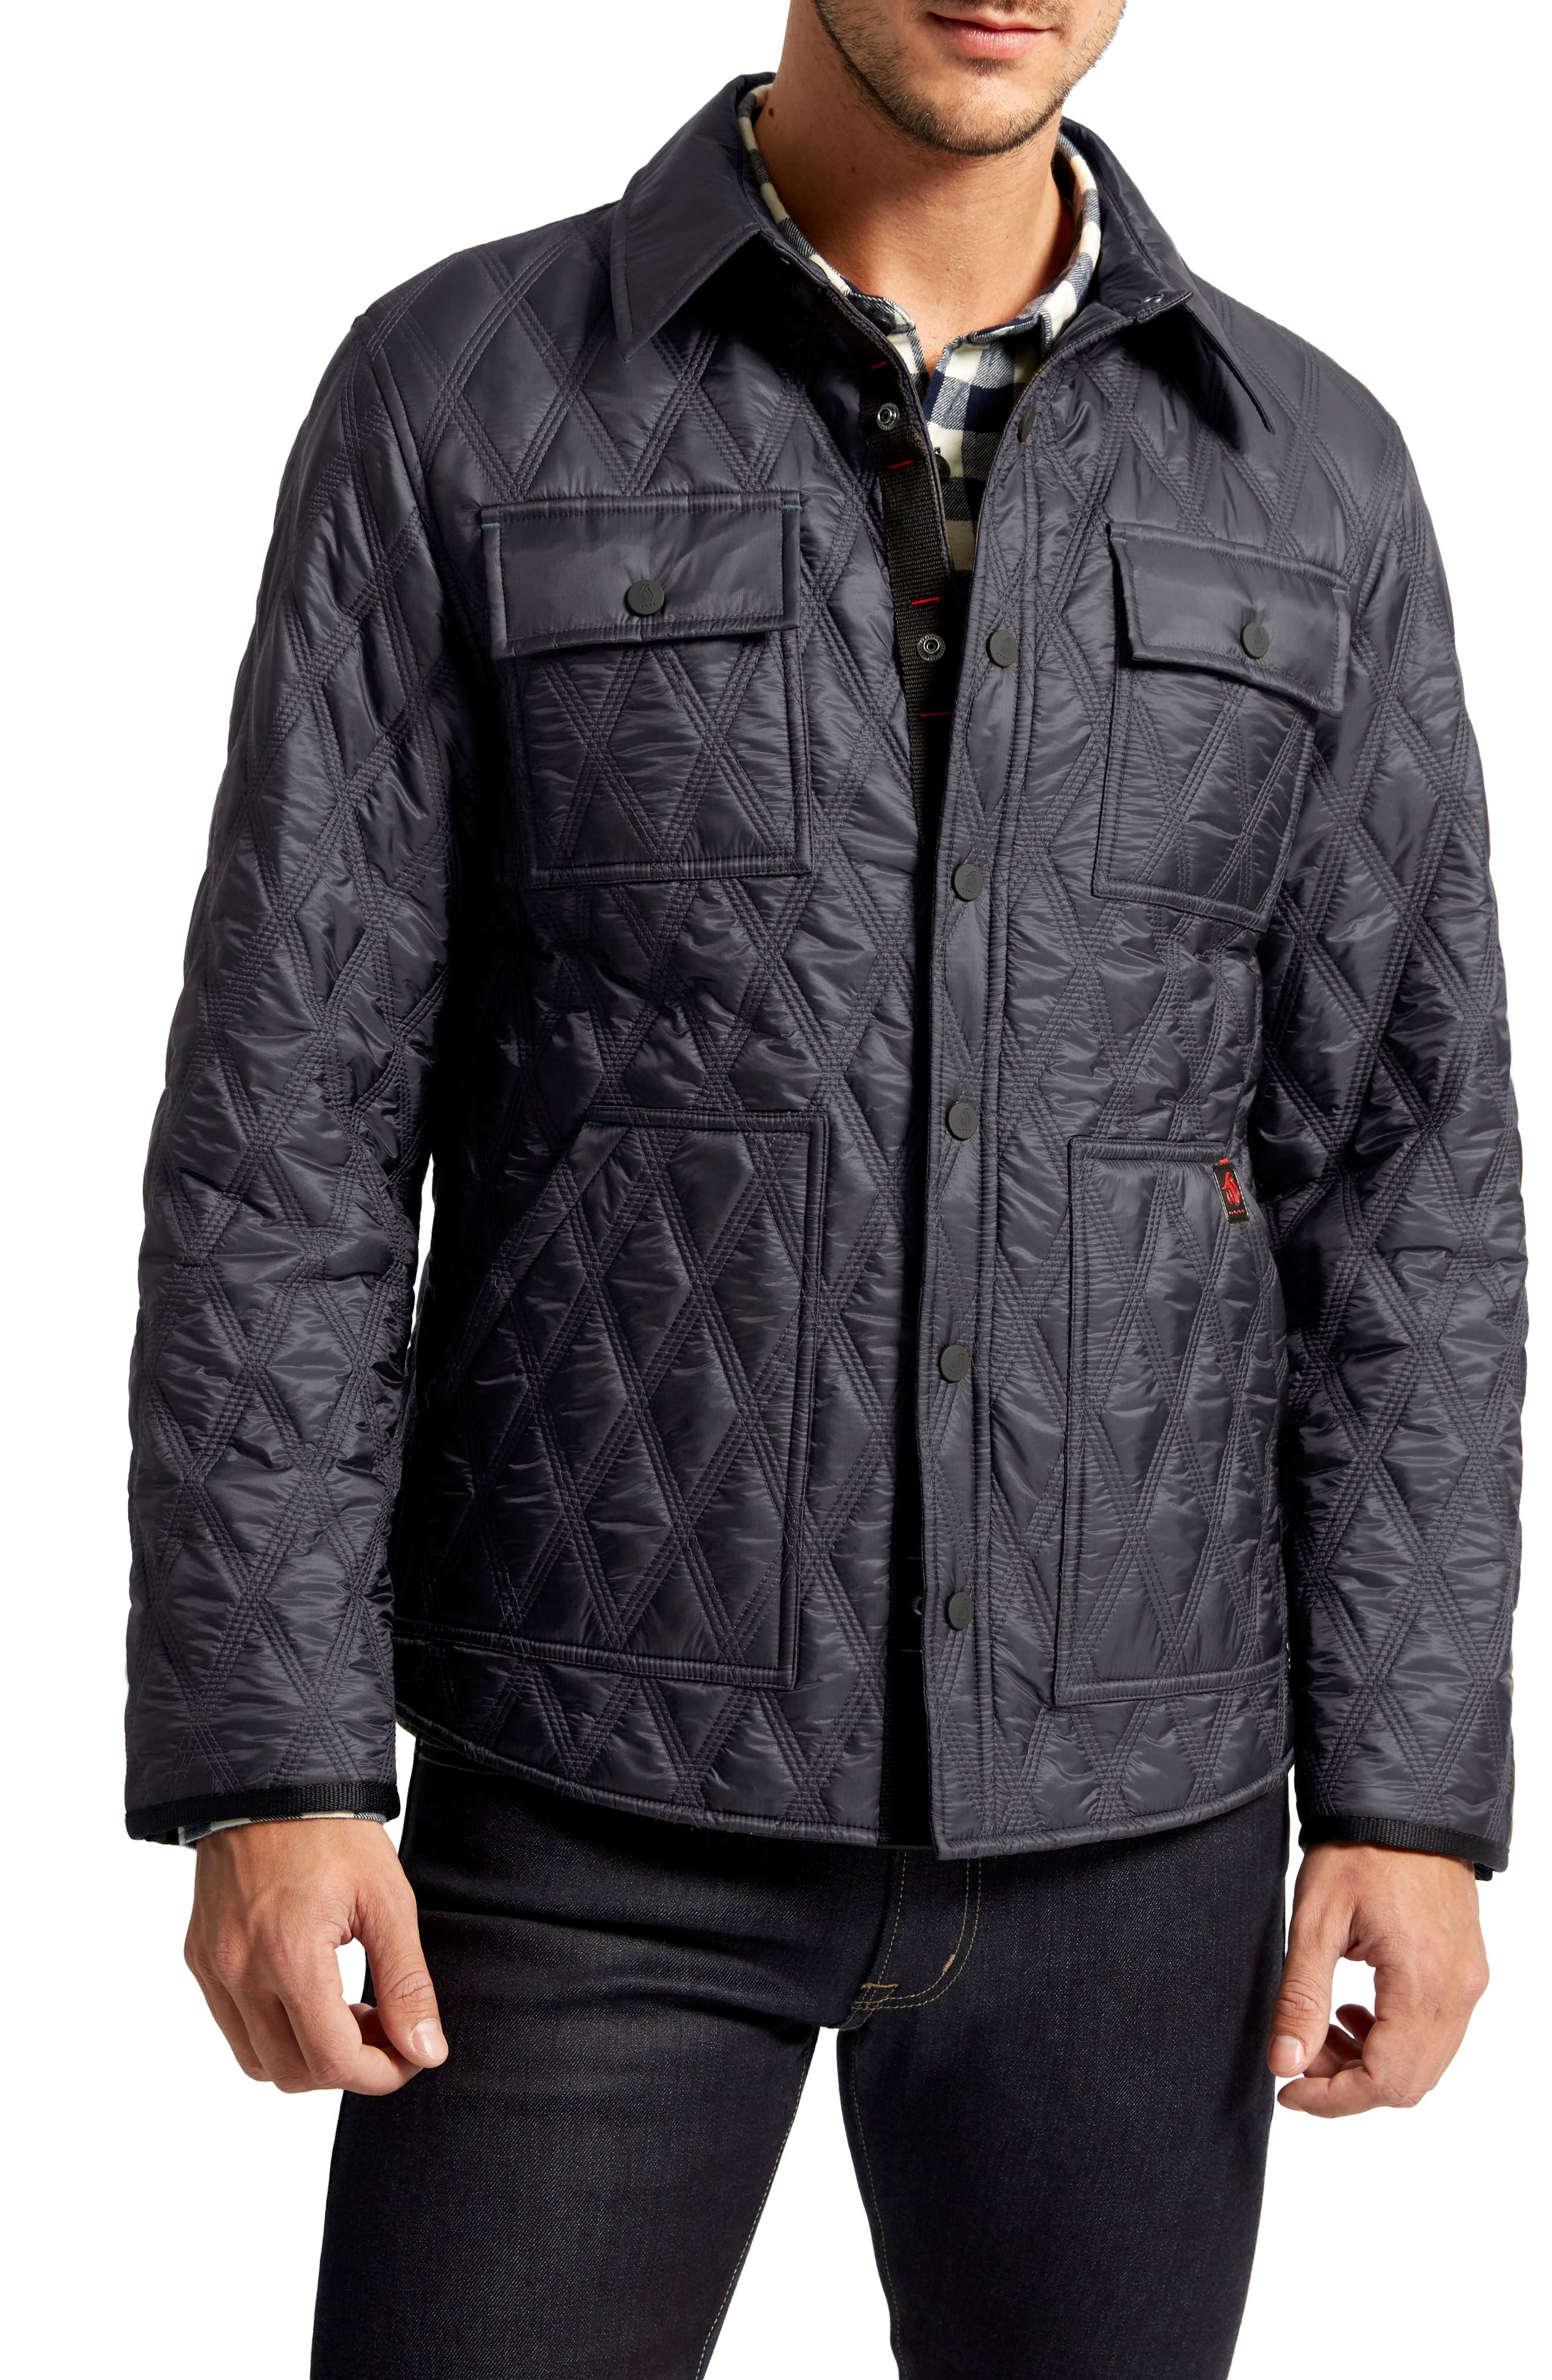 Searcy Heat System Triple Stitch Quilted Jacket,                             Main thumbnail 1, color,                             Midnight